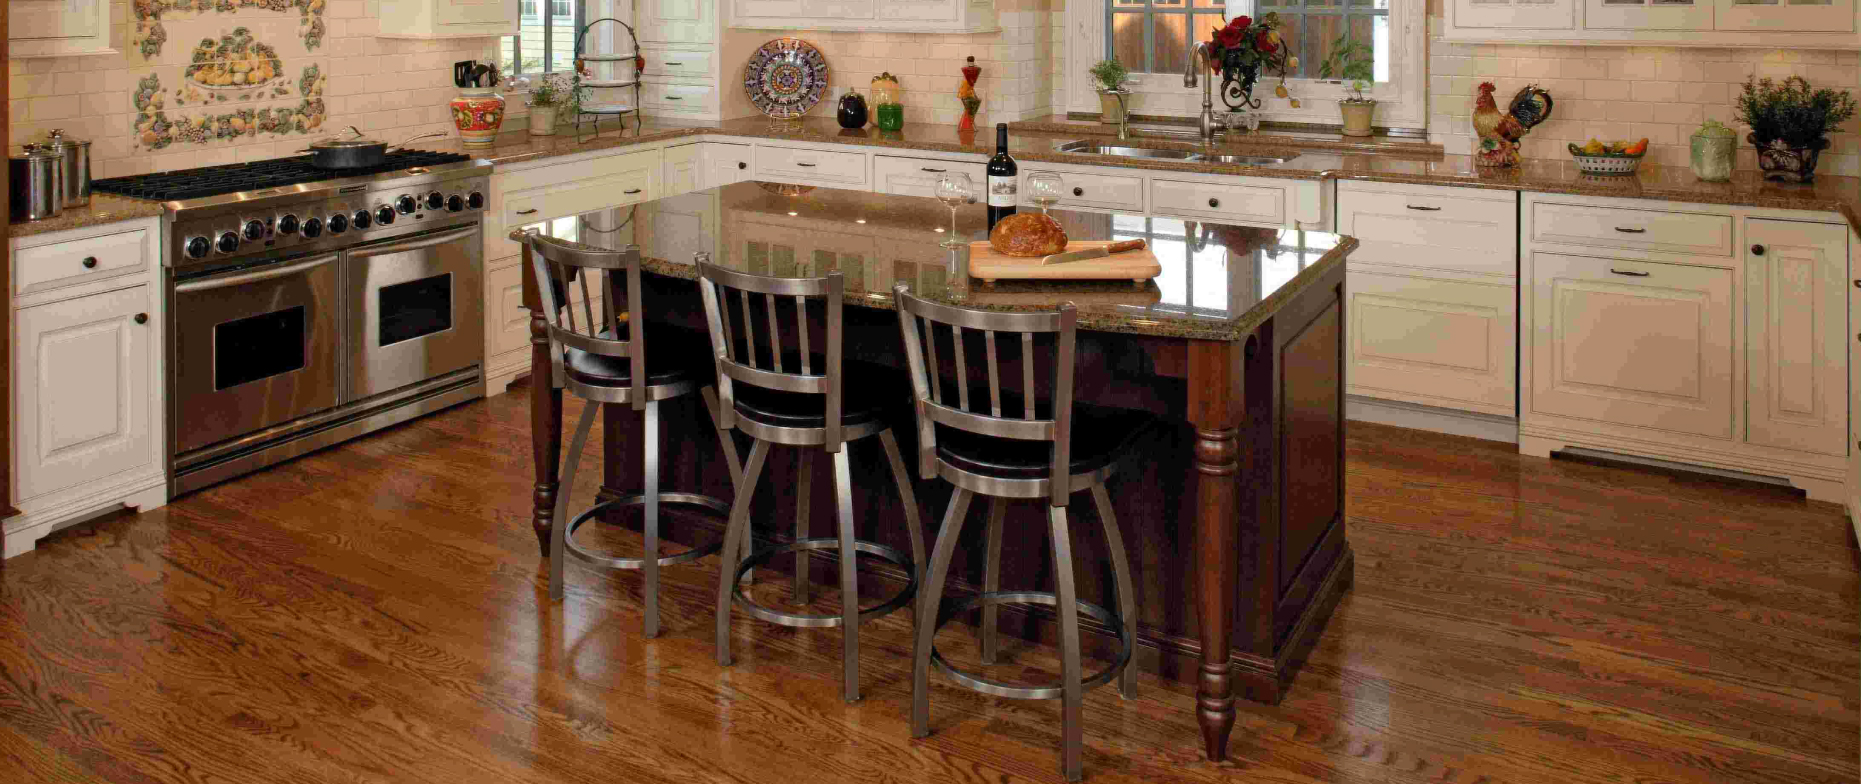 Kitchen Counter Stools | Bar Stools | Swivel Stools | Restaurant Seating